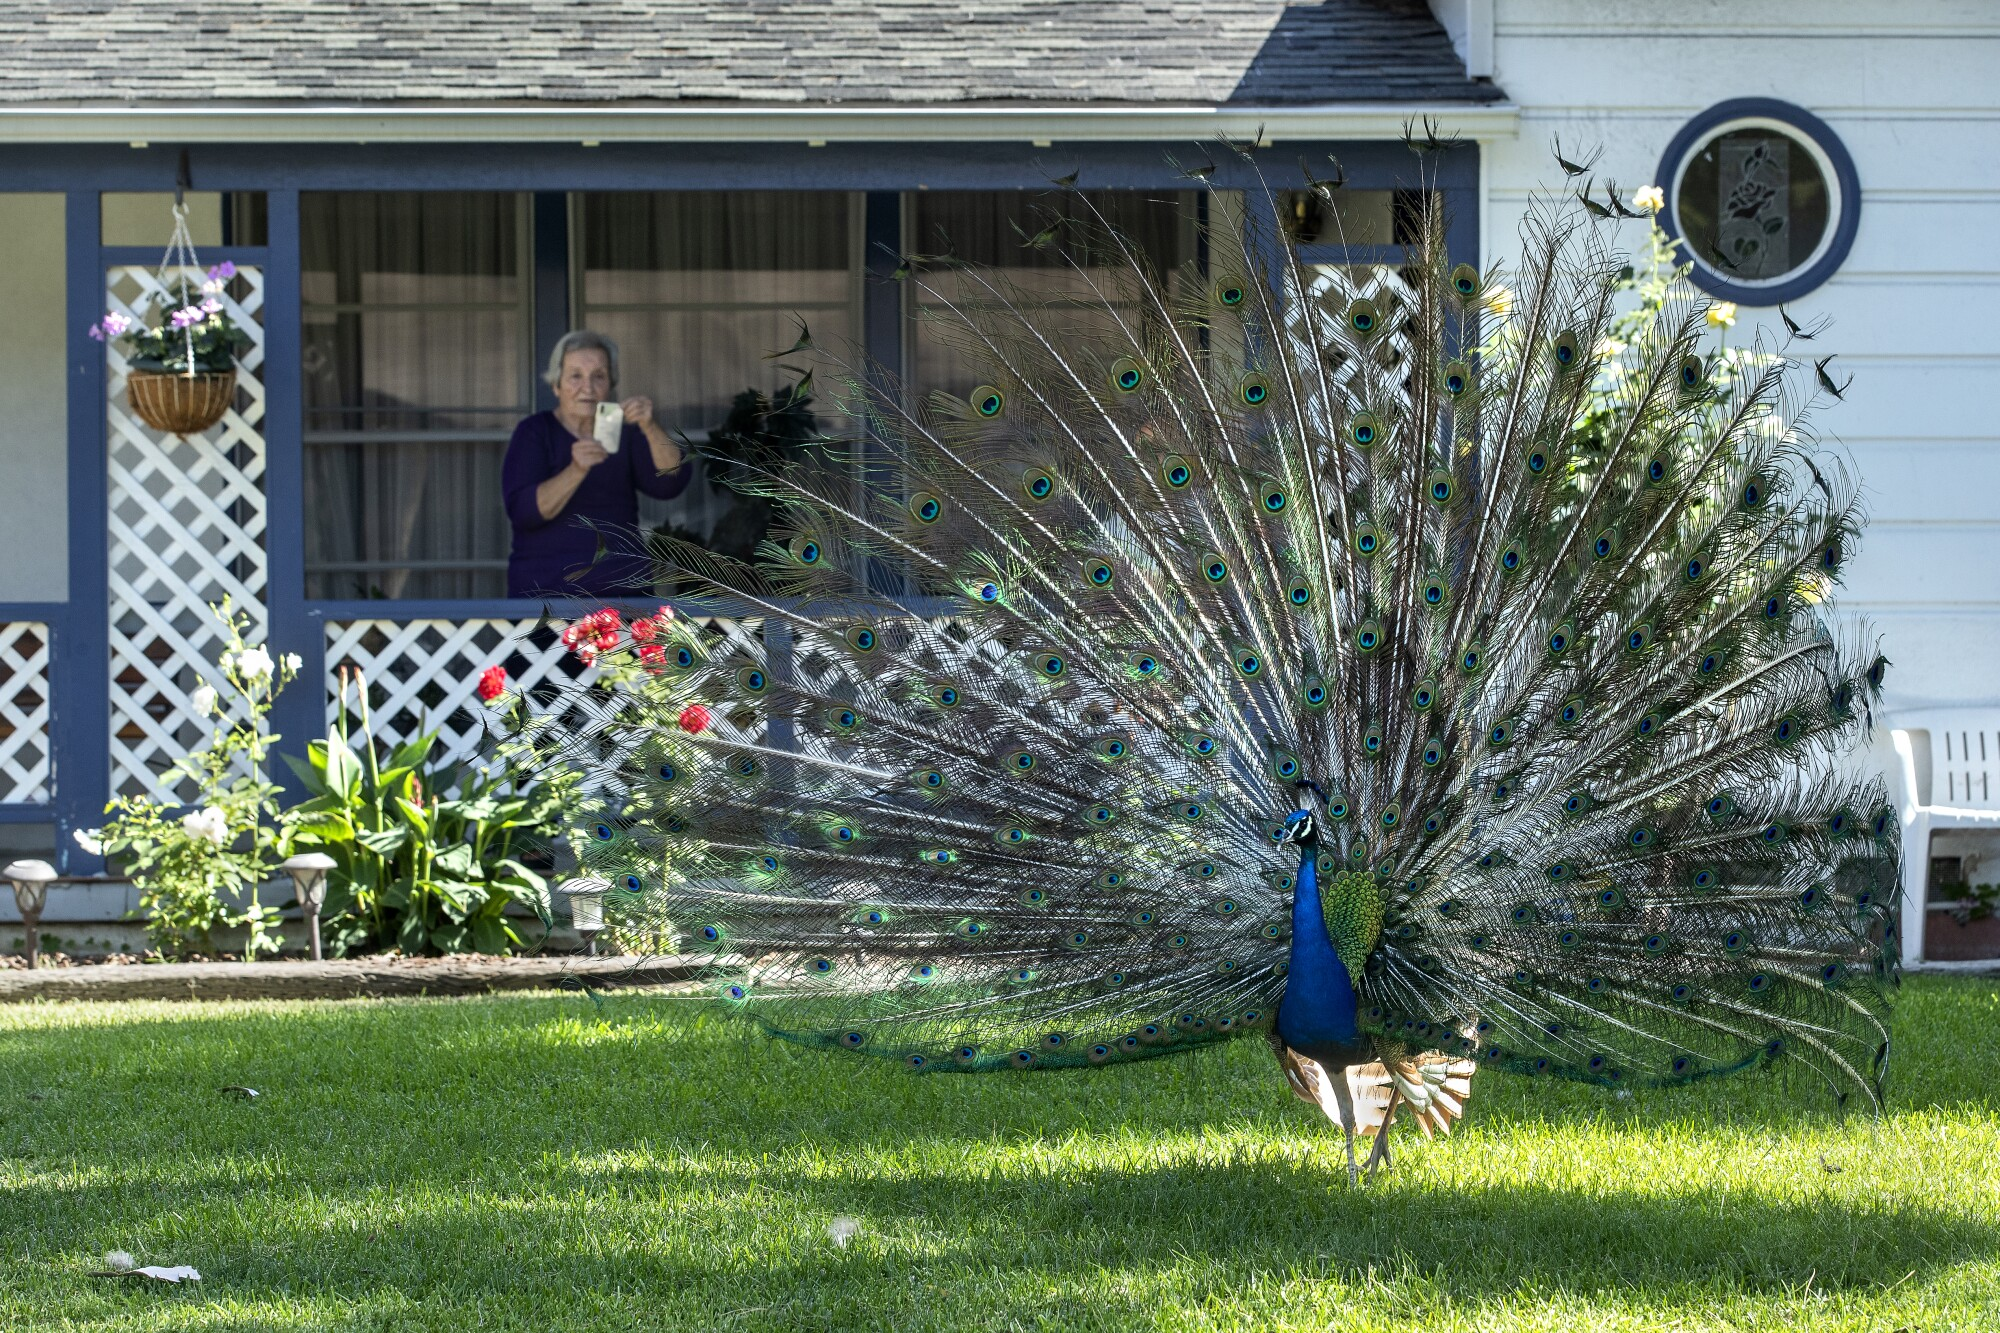 A woman on her front porch photographs a peacock in her yard